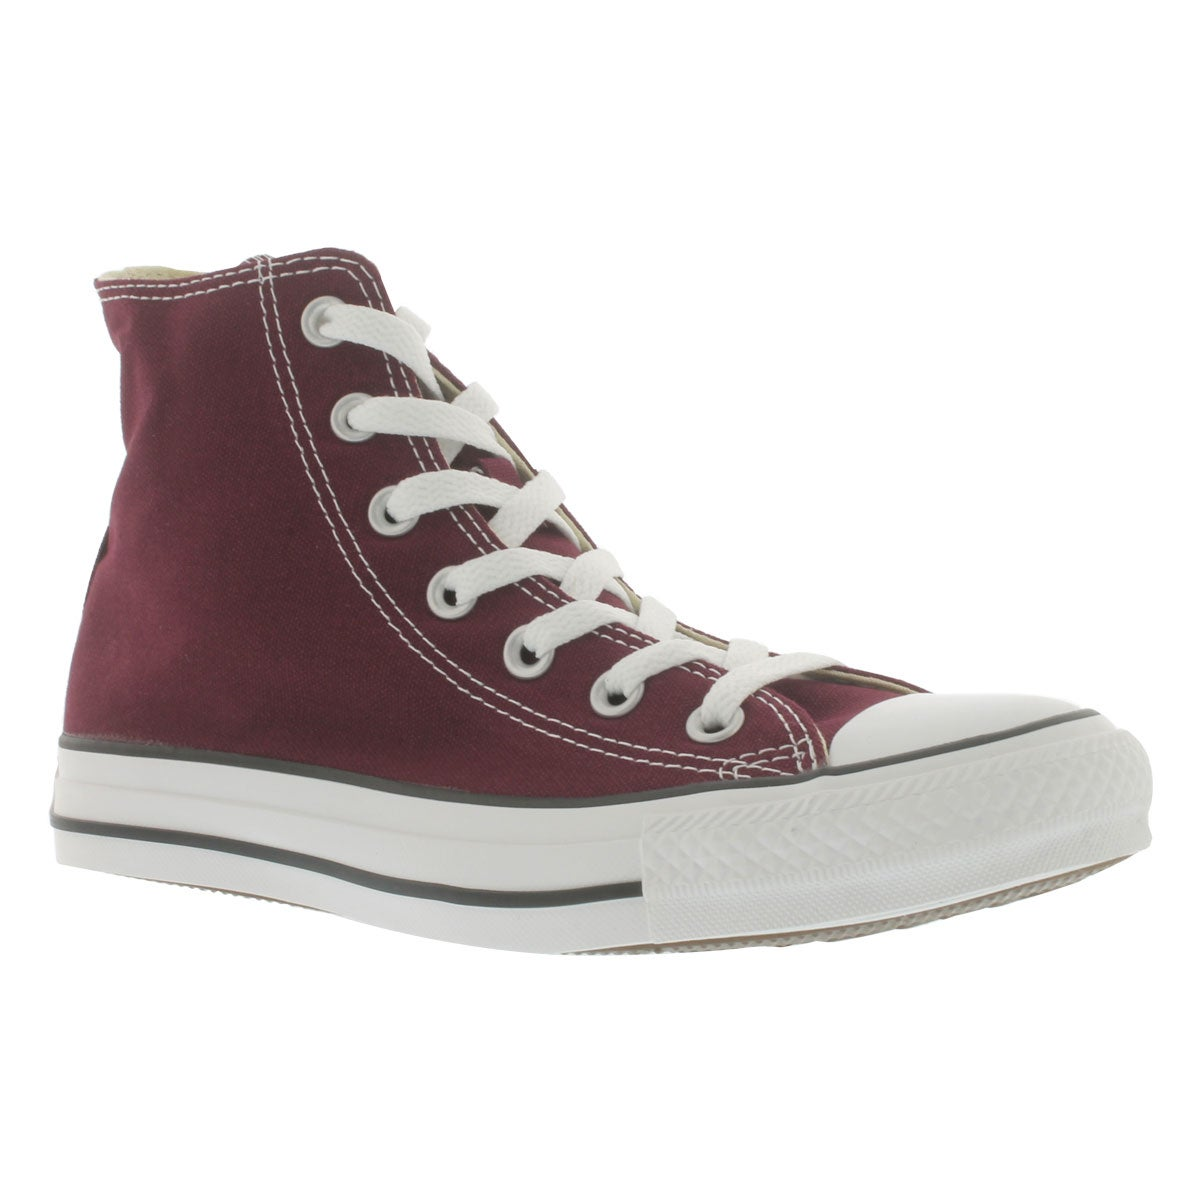 Women's CT ALL STAR Core burgundy sneakers